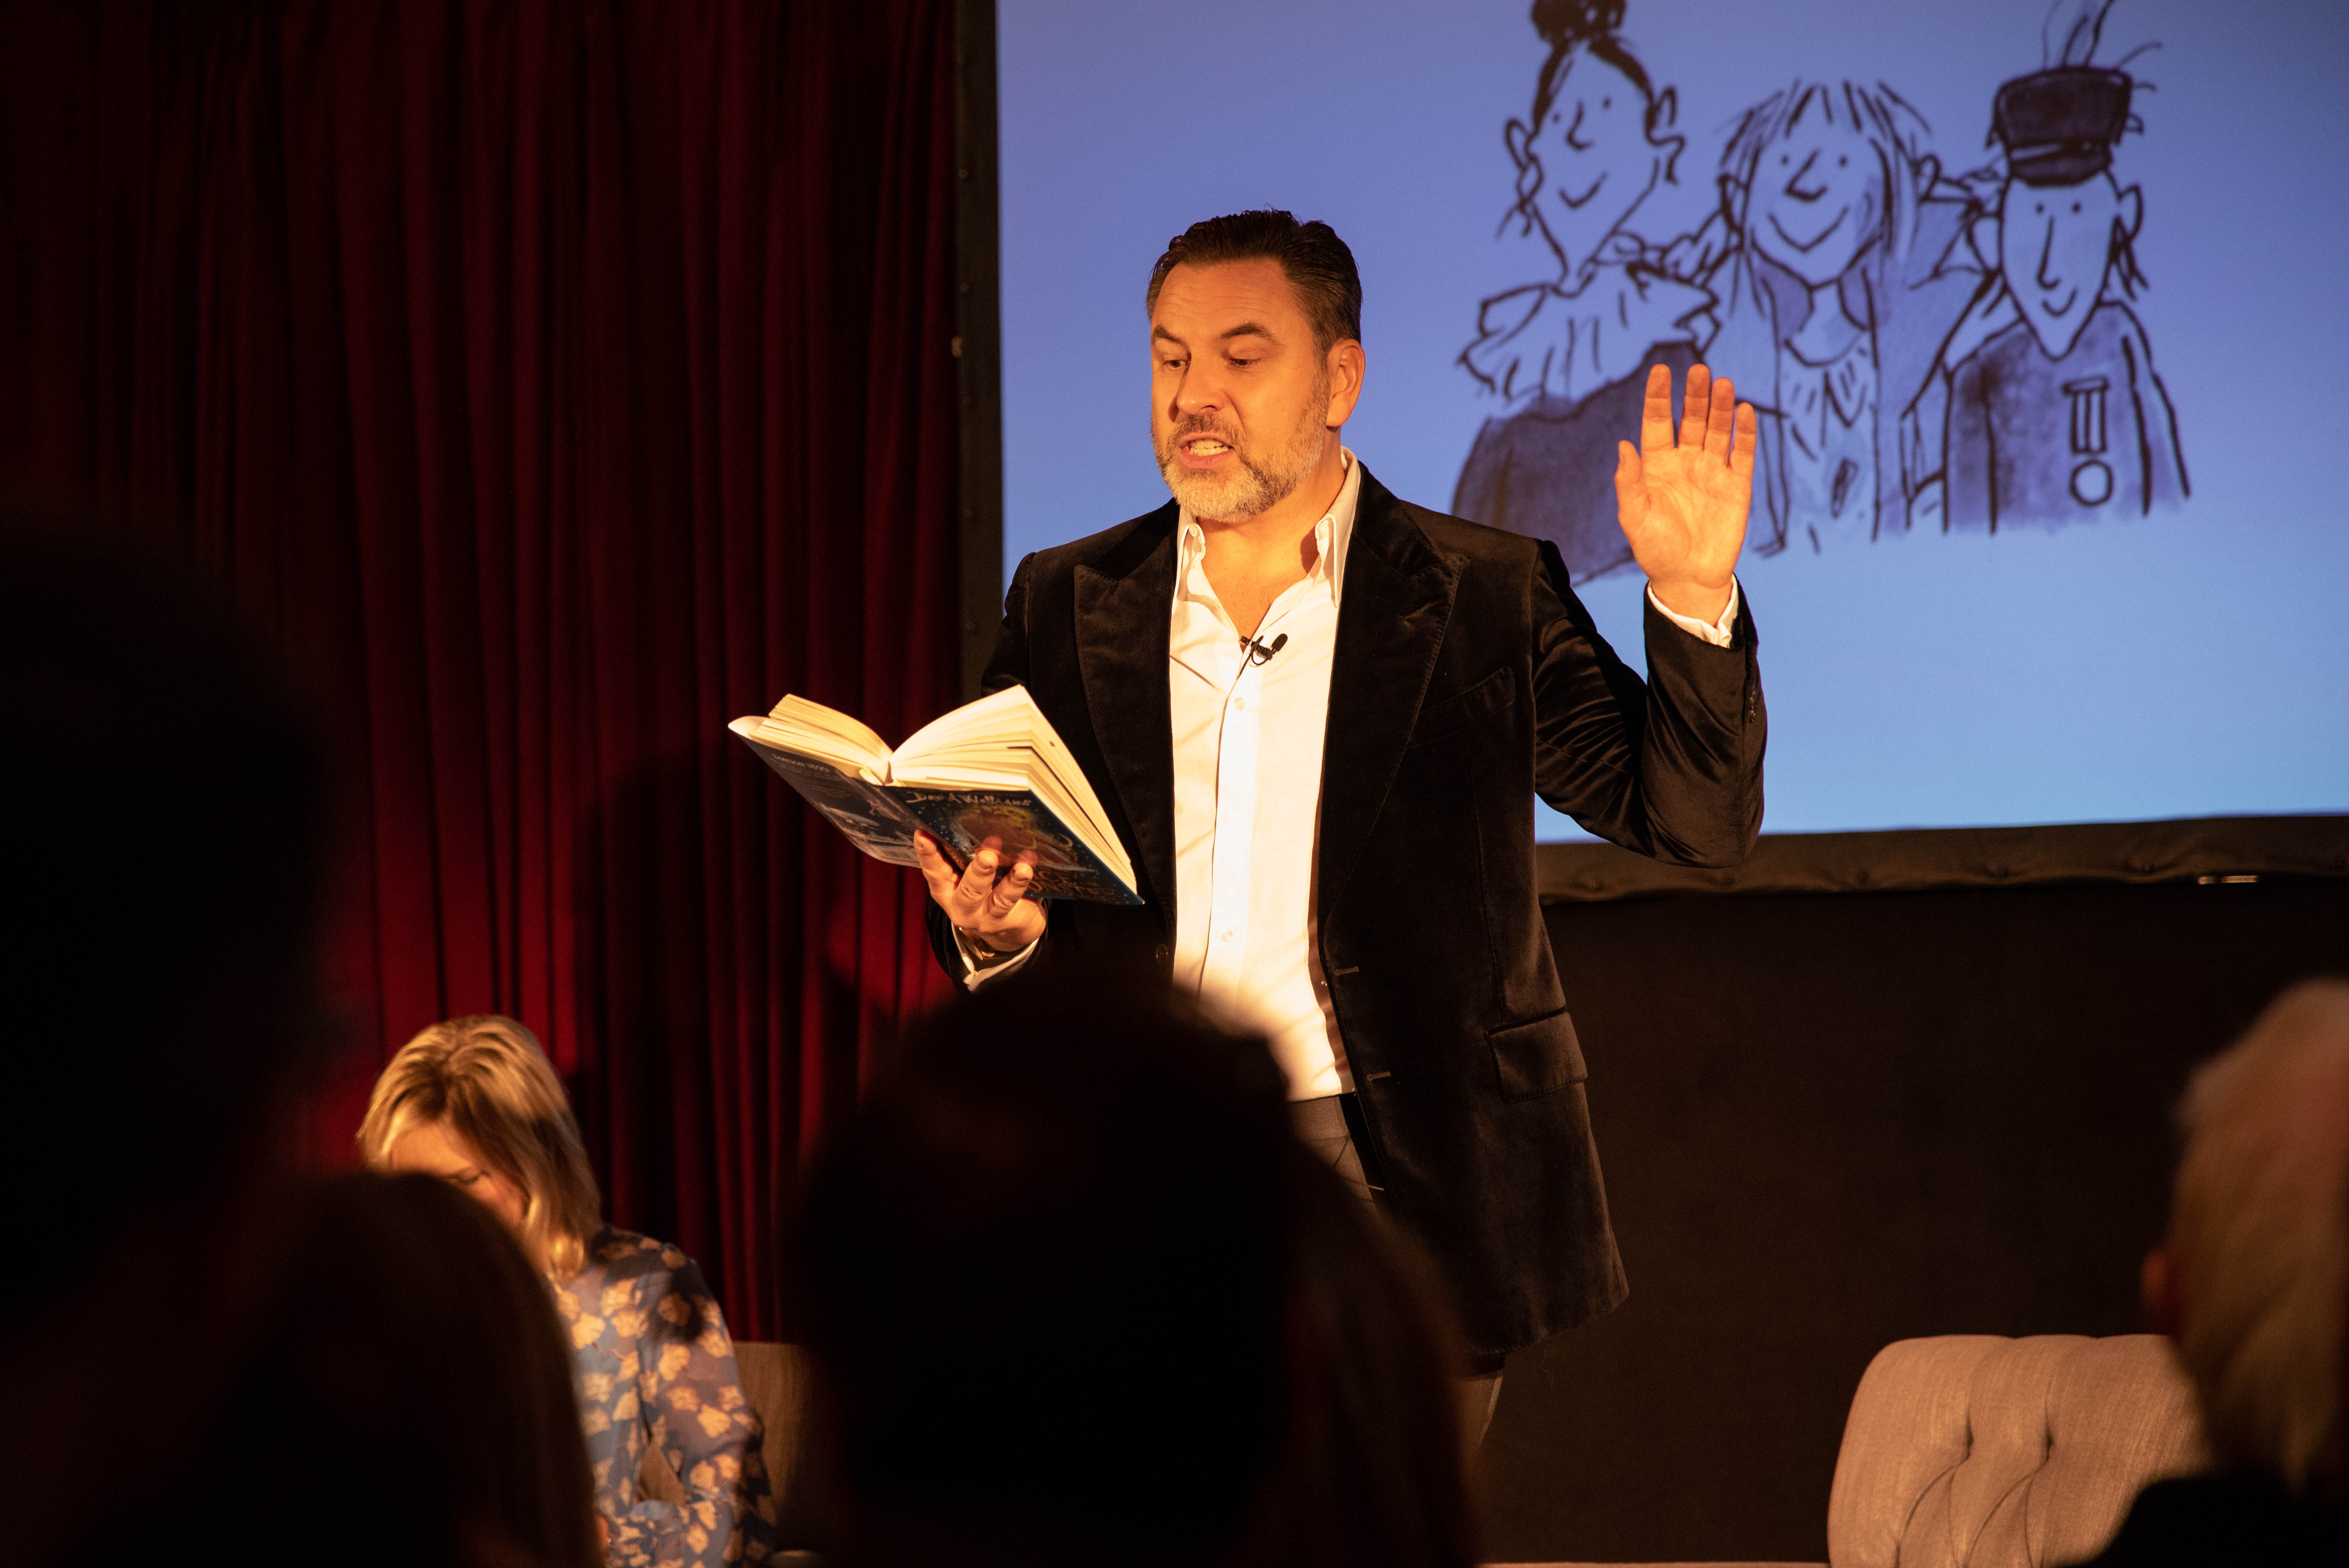 David Walliams reading an excerpt from The Ice Monster